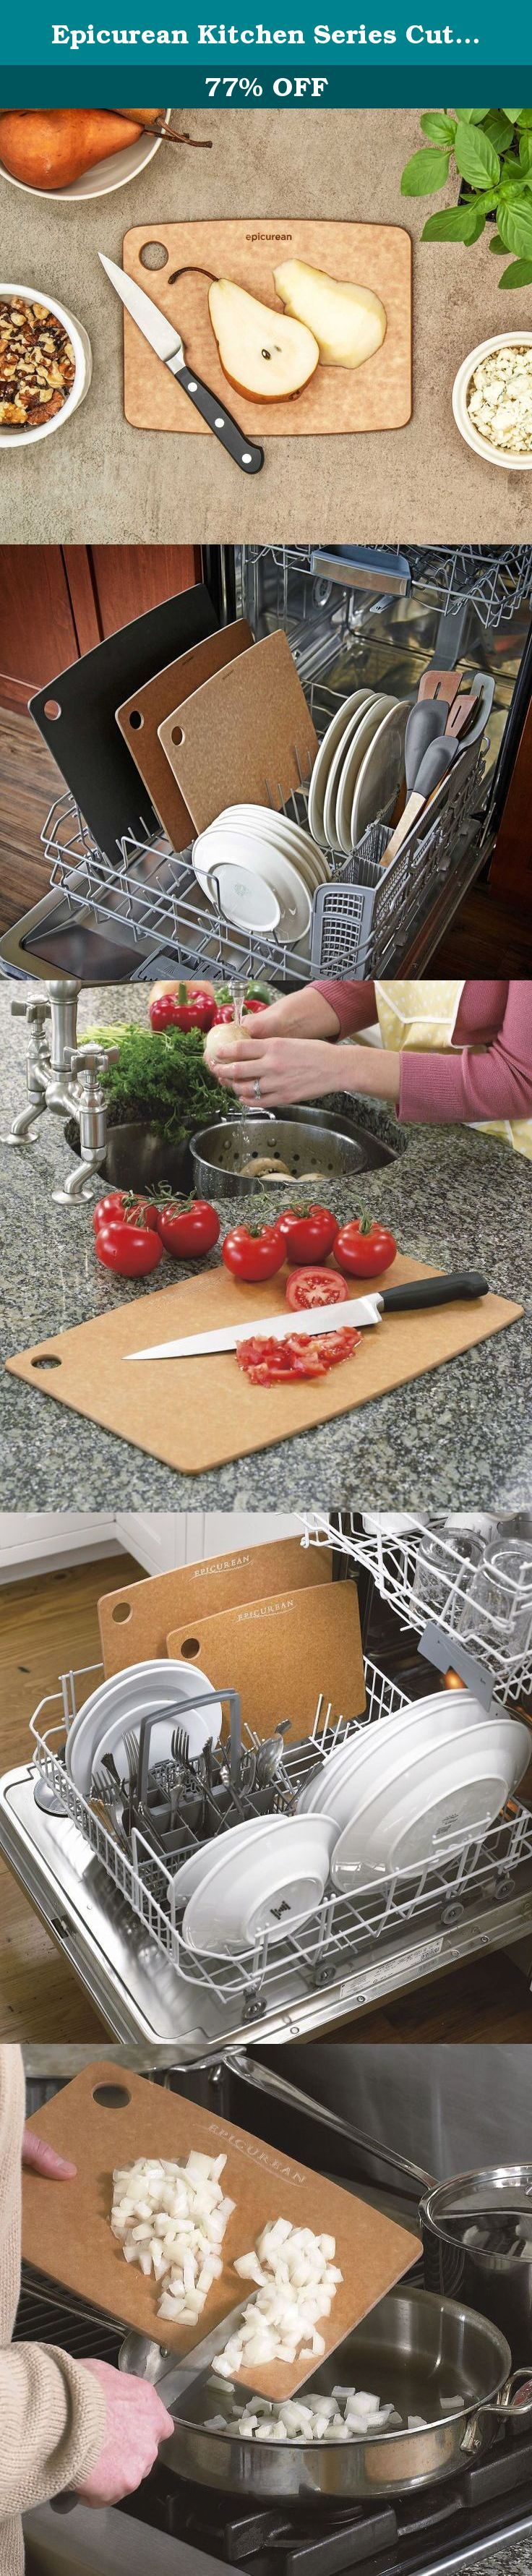 Epicurean Kitchen Series Cutting Board, 8-Inch by 6-Inch, Natural. Epicurean Cutting Surfaces are a practical and distinctive improvement from poly, glass and wood cutting boards. They have all of the best qualities and none of the bad-in one highly functional surface. Every design is thoughtfully detailed for functionality in use, clean up and storage. This Epicurean Cutting board is designed to fit in the dishwasher and is NSF approved, so that you can be assured that they will be easy…